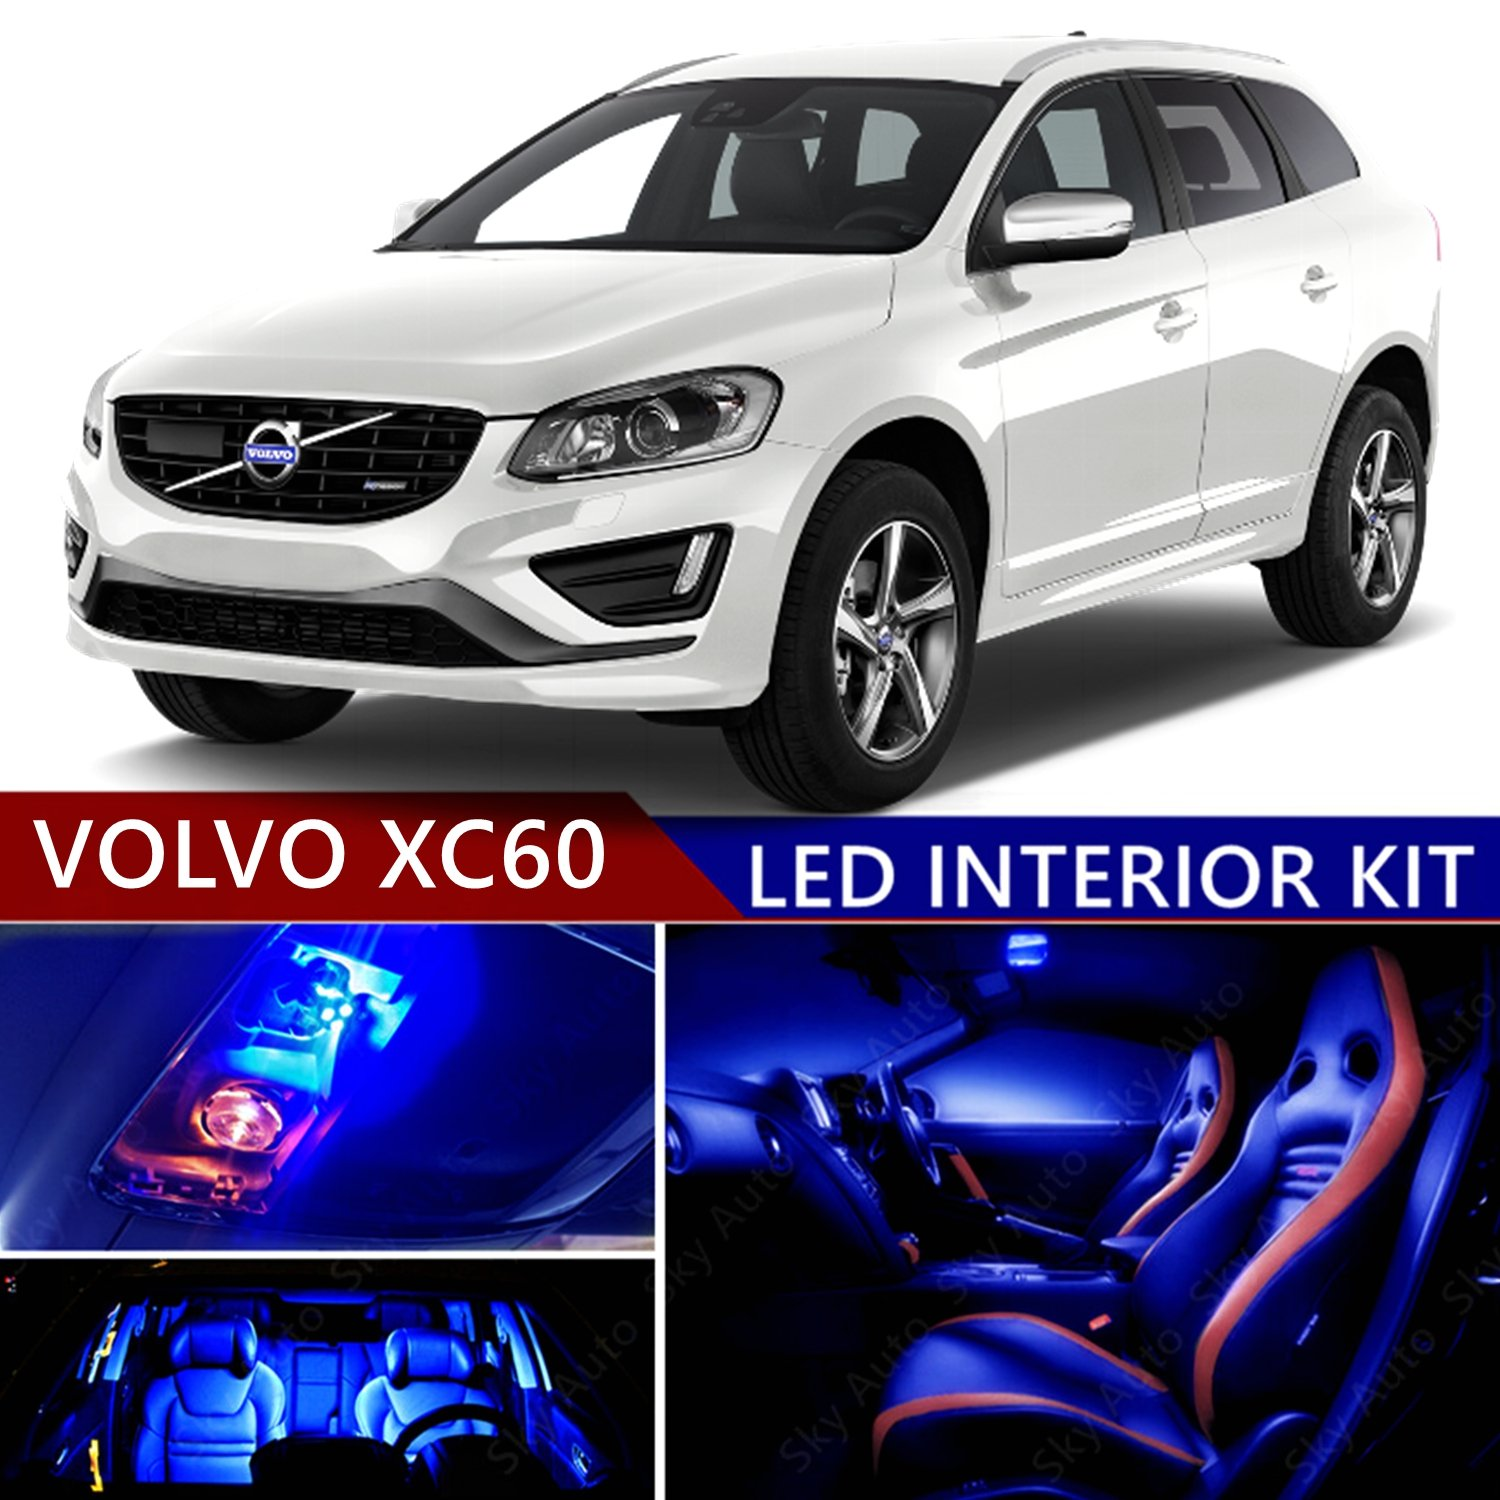 2E2 Volvo Xc60 Interior Fuse Box | Wiring Resources on bmw x5 interior, volvo xc 60, volvo new models 2016, volvo s80 interior, volvo 262c interior, 2010 volvo truck interior, volvo c70, 2011 volvo 730 interior, volvo v60 interior, audi q7 interior, toyota rav4 interior, volvo xc70, volvo c30 interior, volvo fe interior, gmc terrain interior, buick enclave interior, audi q5 interior, volvo interior view, volvo s60, volvo xc90,